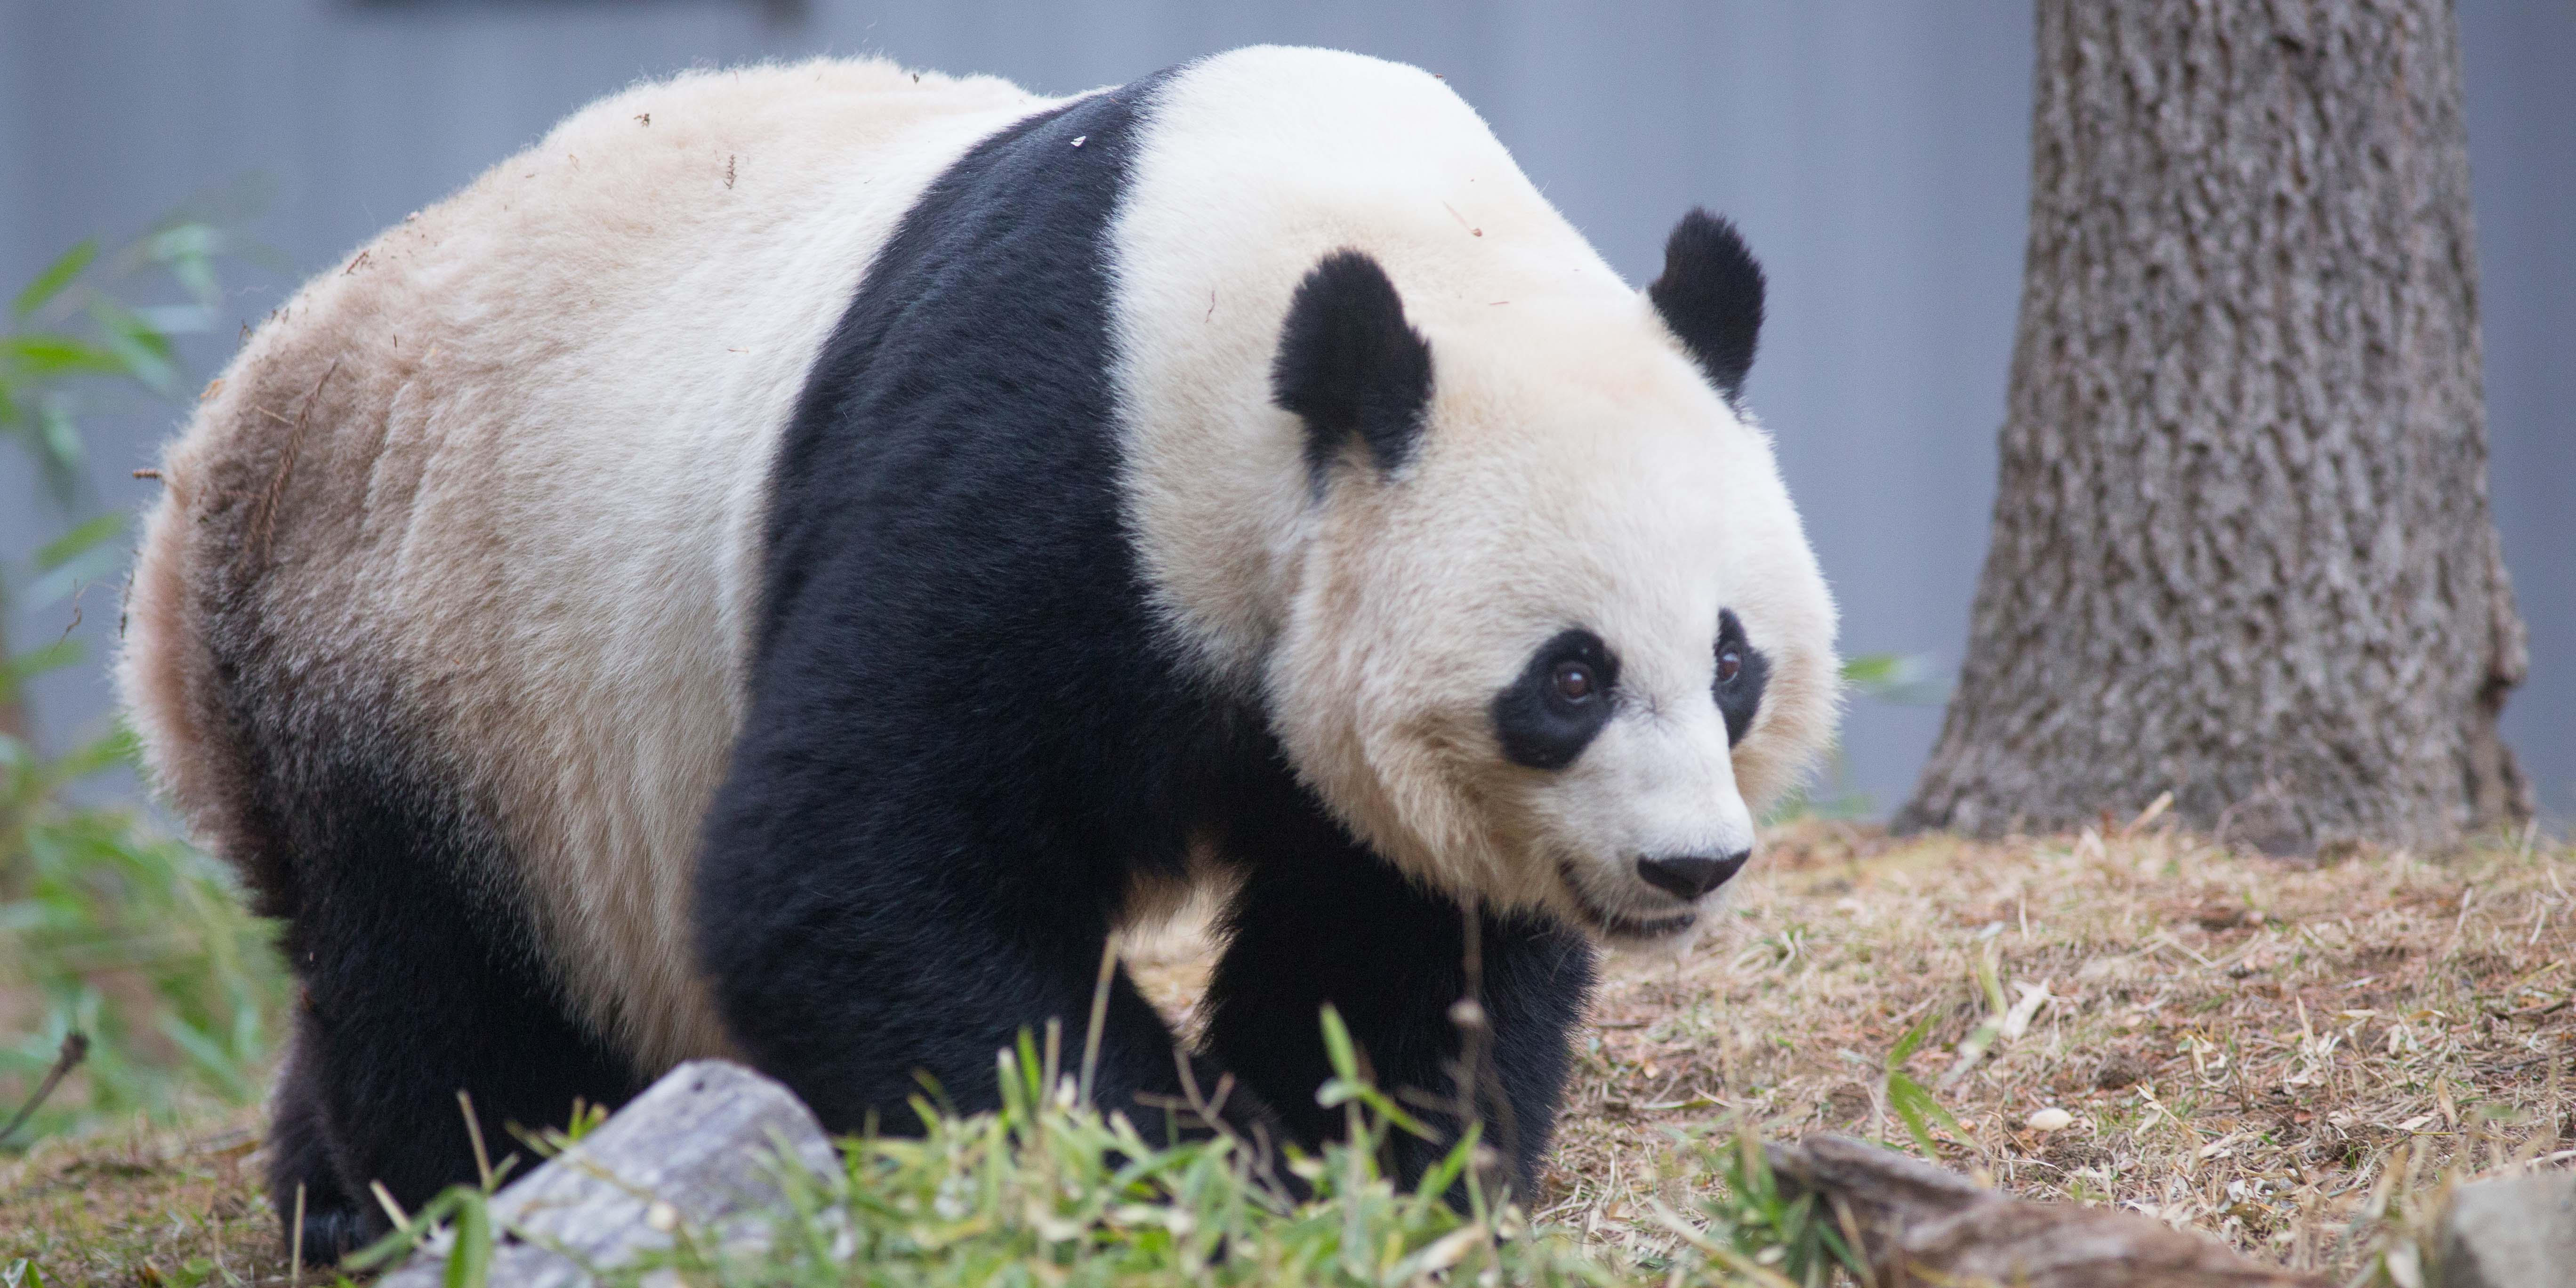 Giant panda Mei Xiang stands in the grass near a tree in her outdoor habitat at the Smithsonian's National Zoo